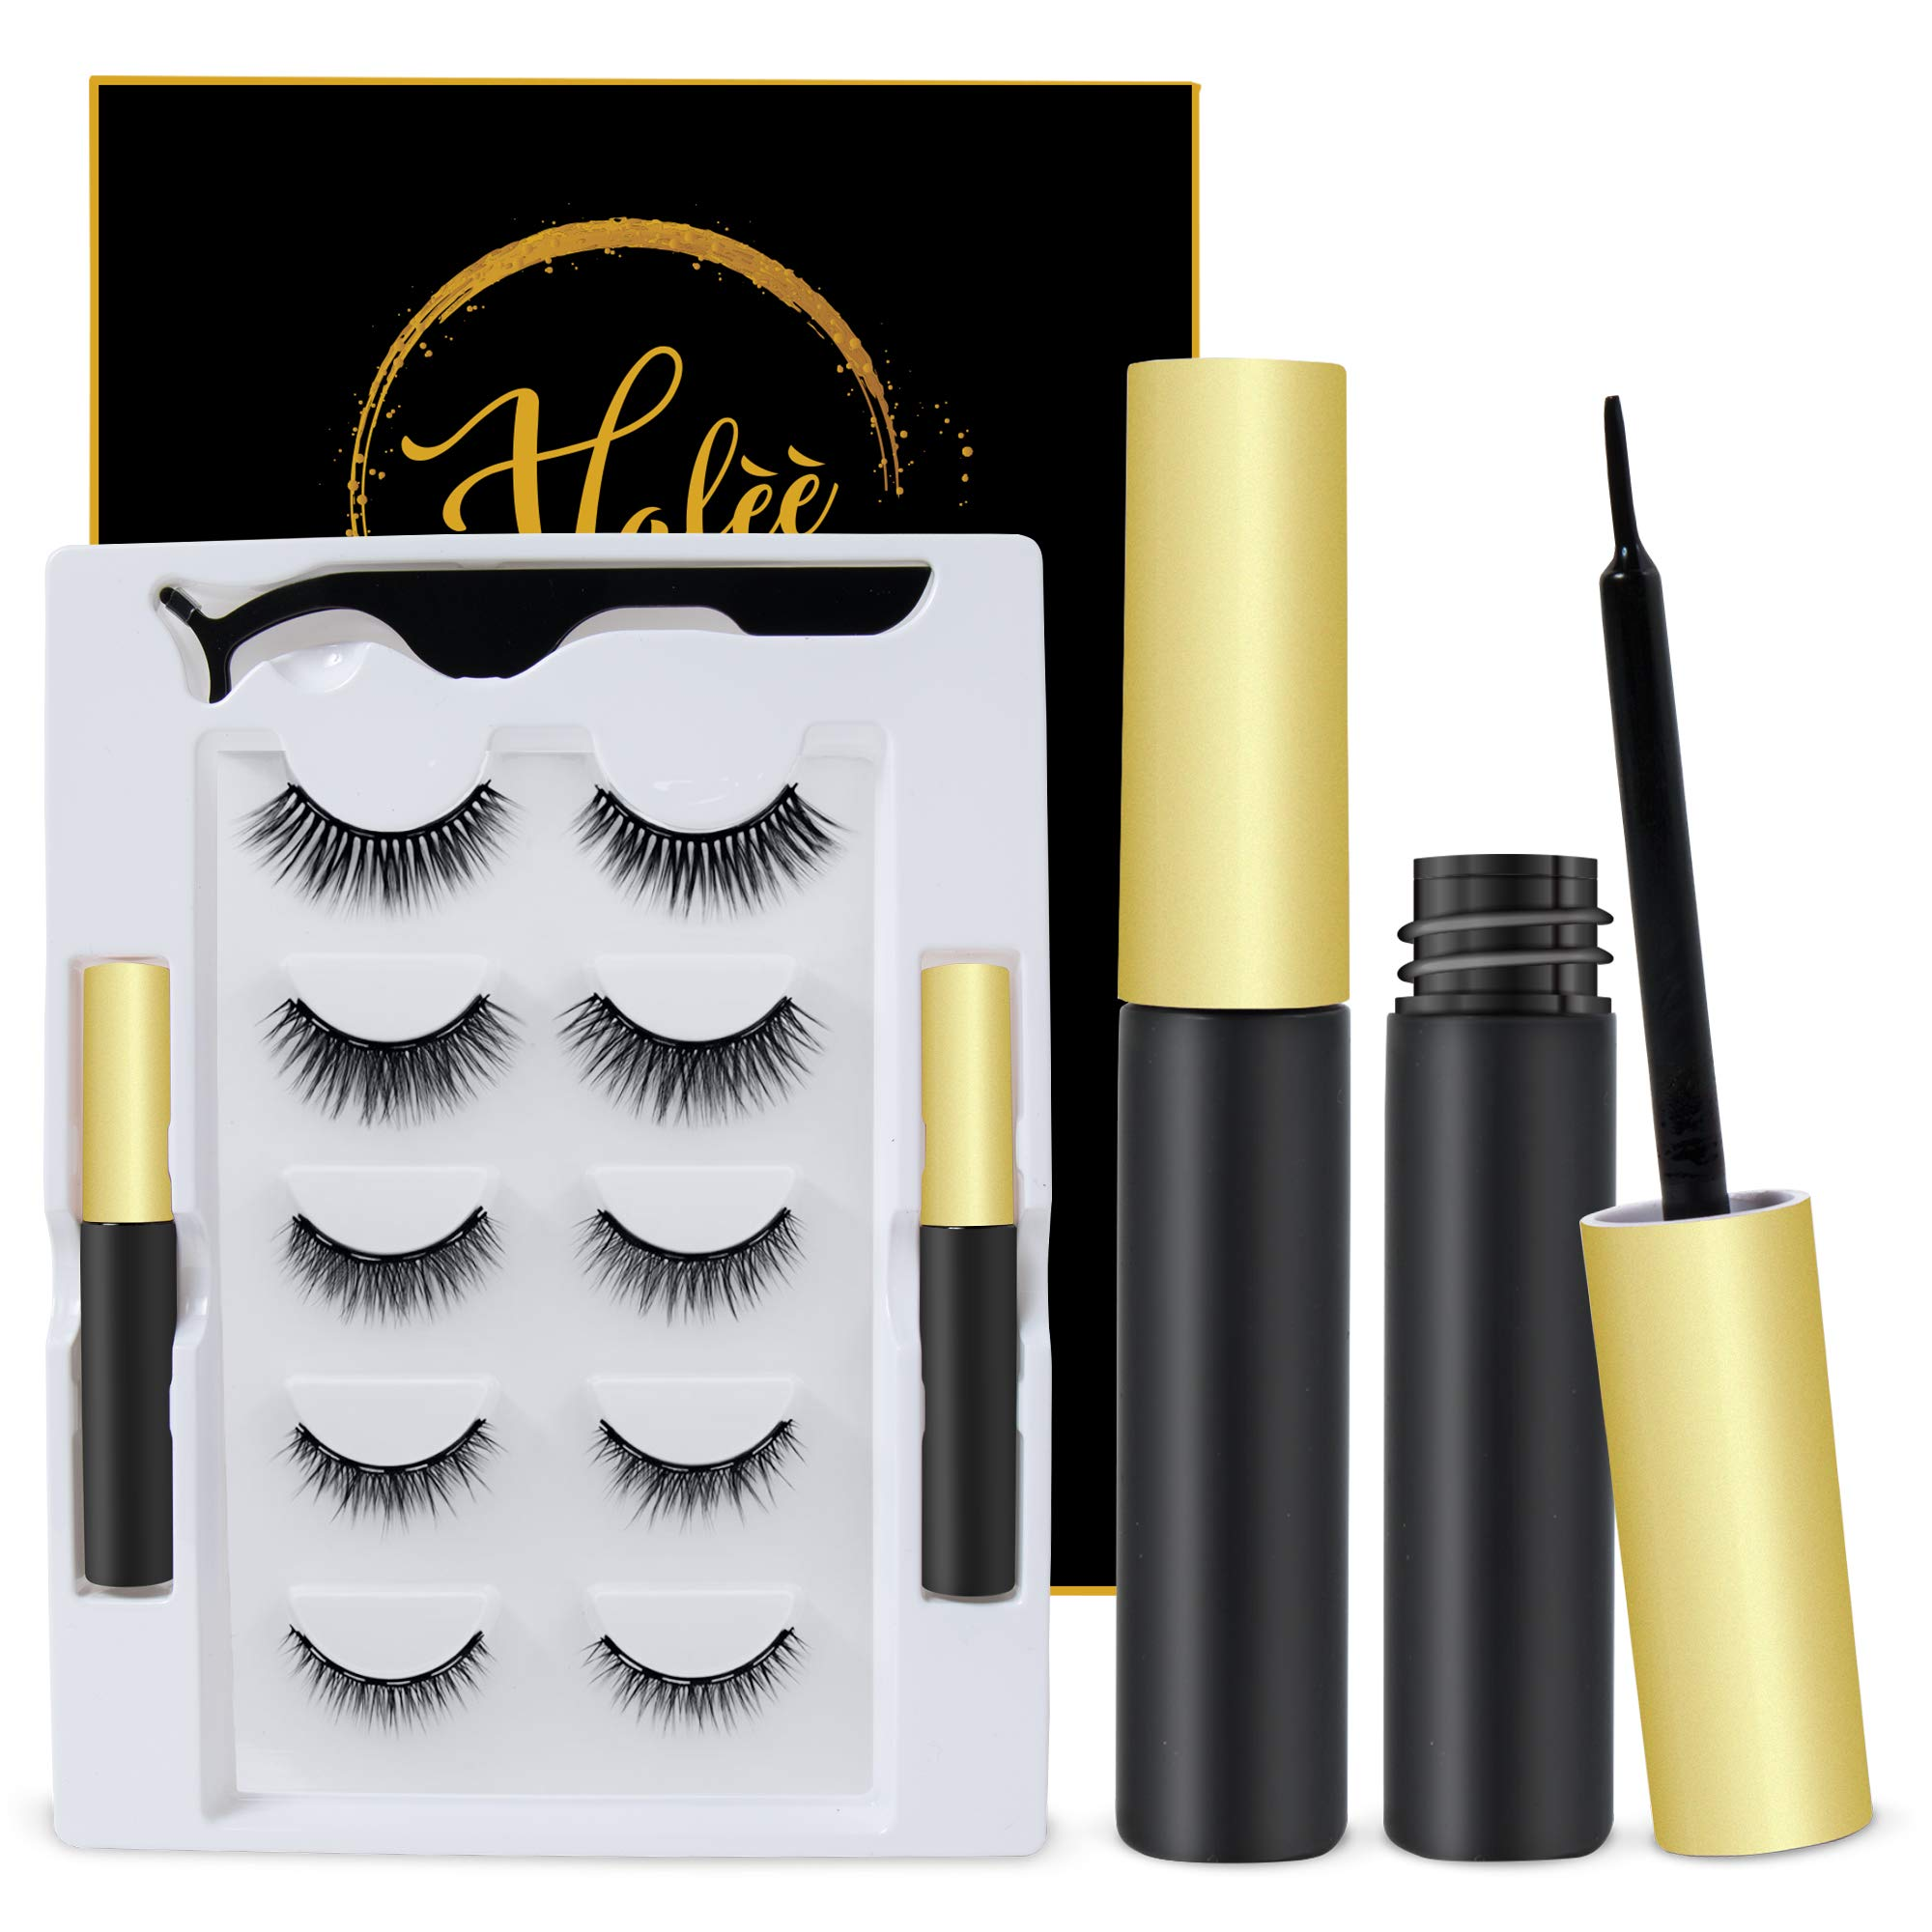 Magnetic Eyelashes Kits, Upgraded with Double Eyeliner, Reusable, Cuttable, Waterproof, 5 Pairs